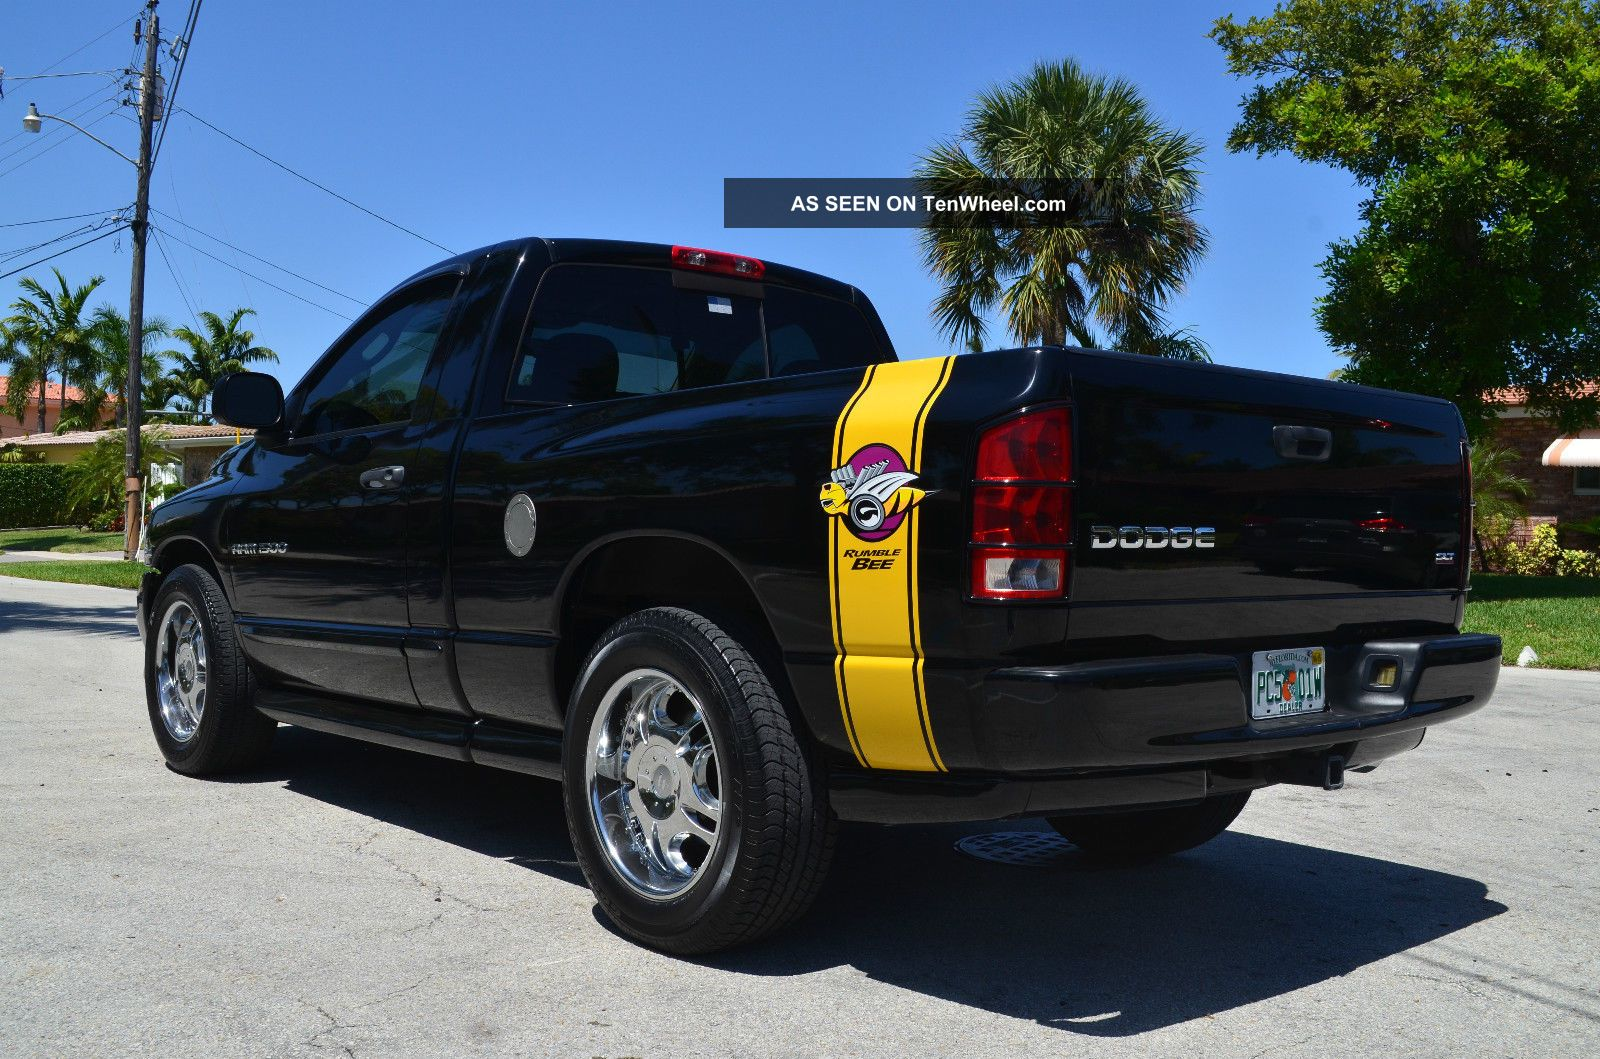 2004 dodge ram 1500 rumble bee hemi car fax florida truck. Black Bedroom Furniture Sets. Home Design Ideas